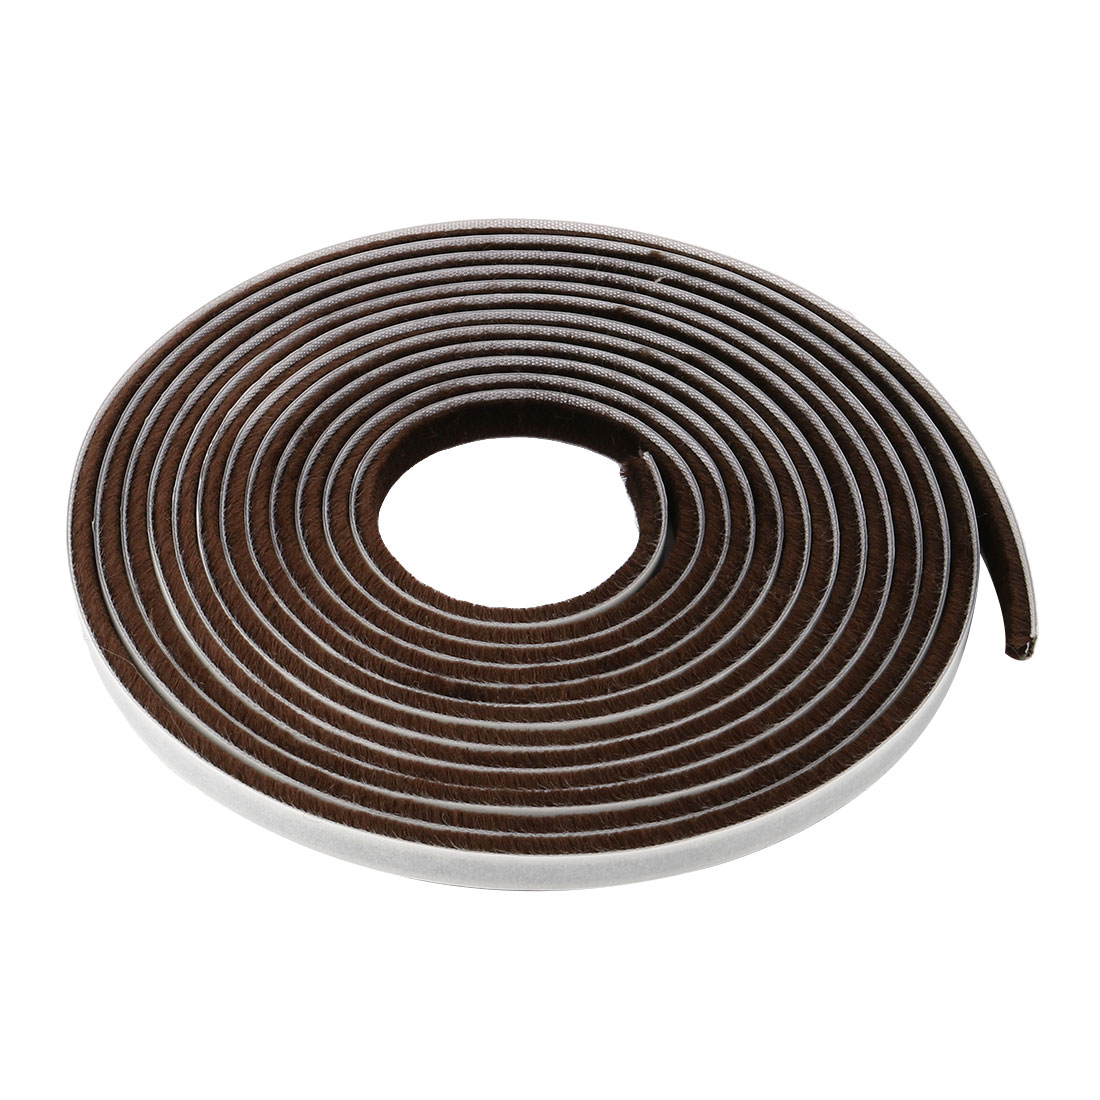 Furniture Weather Stripping Window Brown 16.4Ft(3/8Inch Widthx3/16Inch Thick)